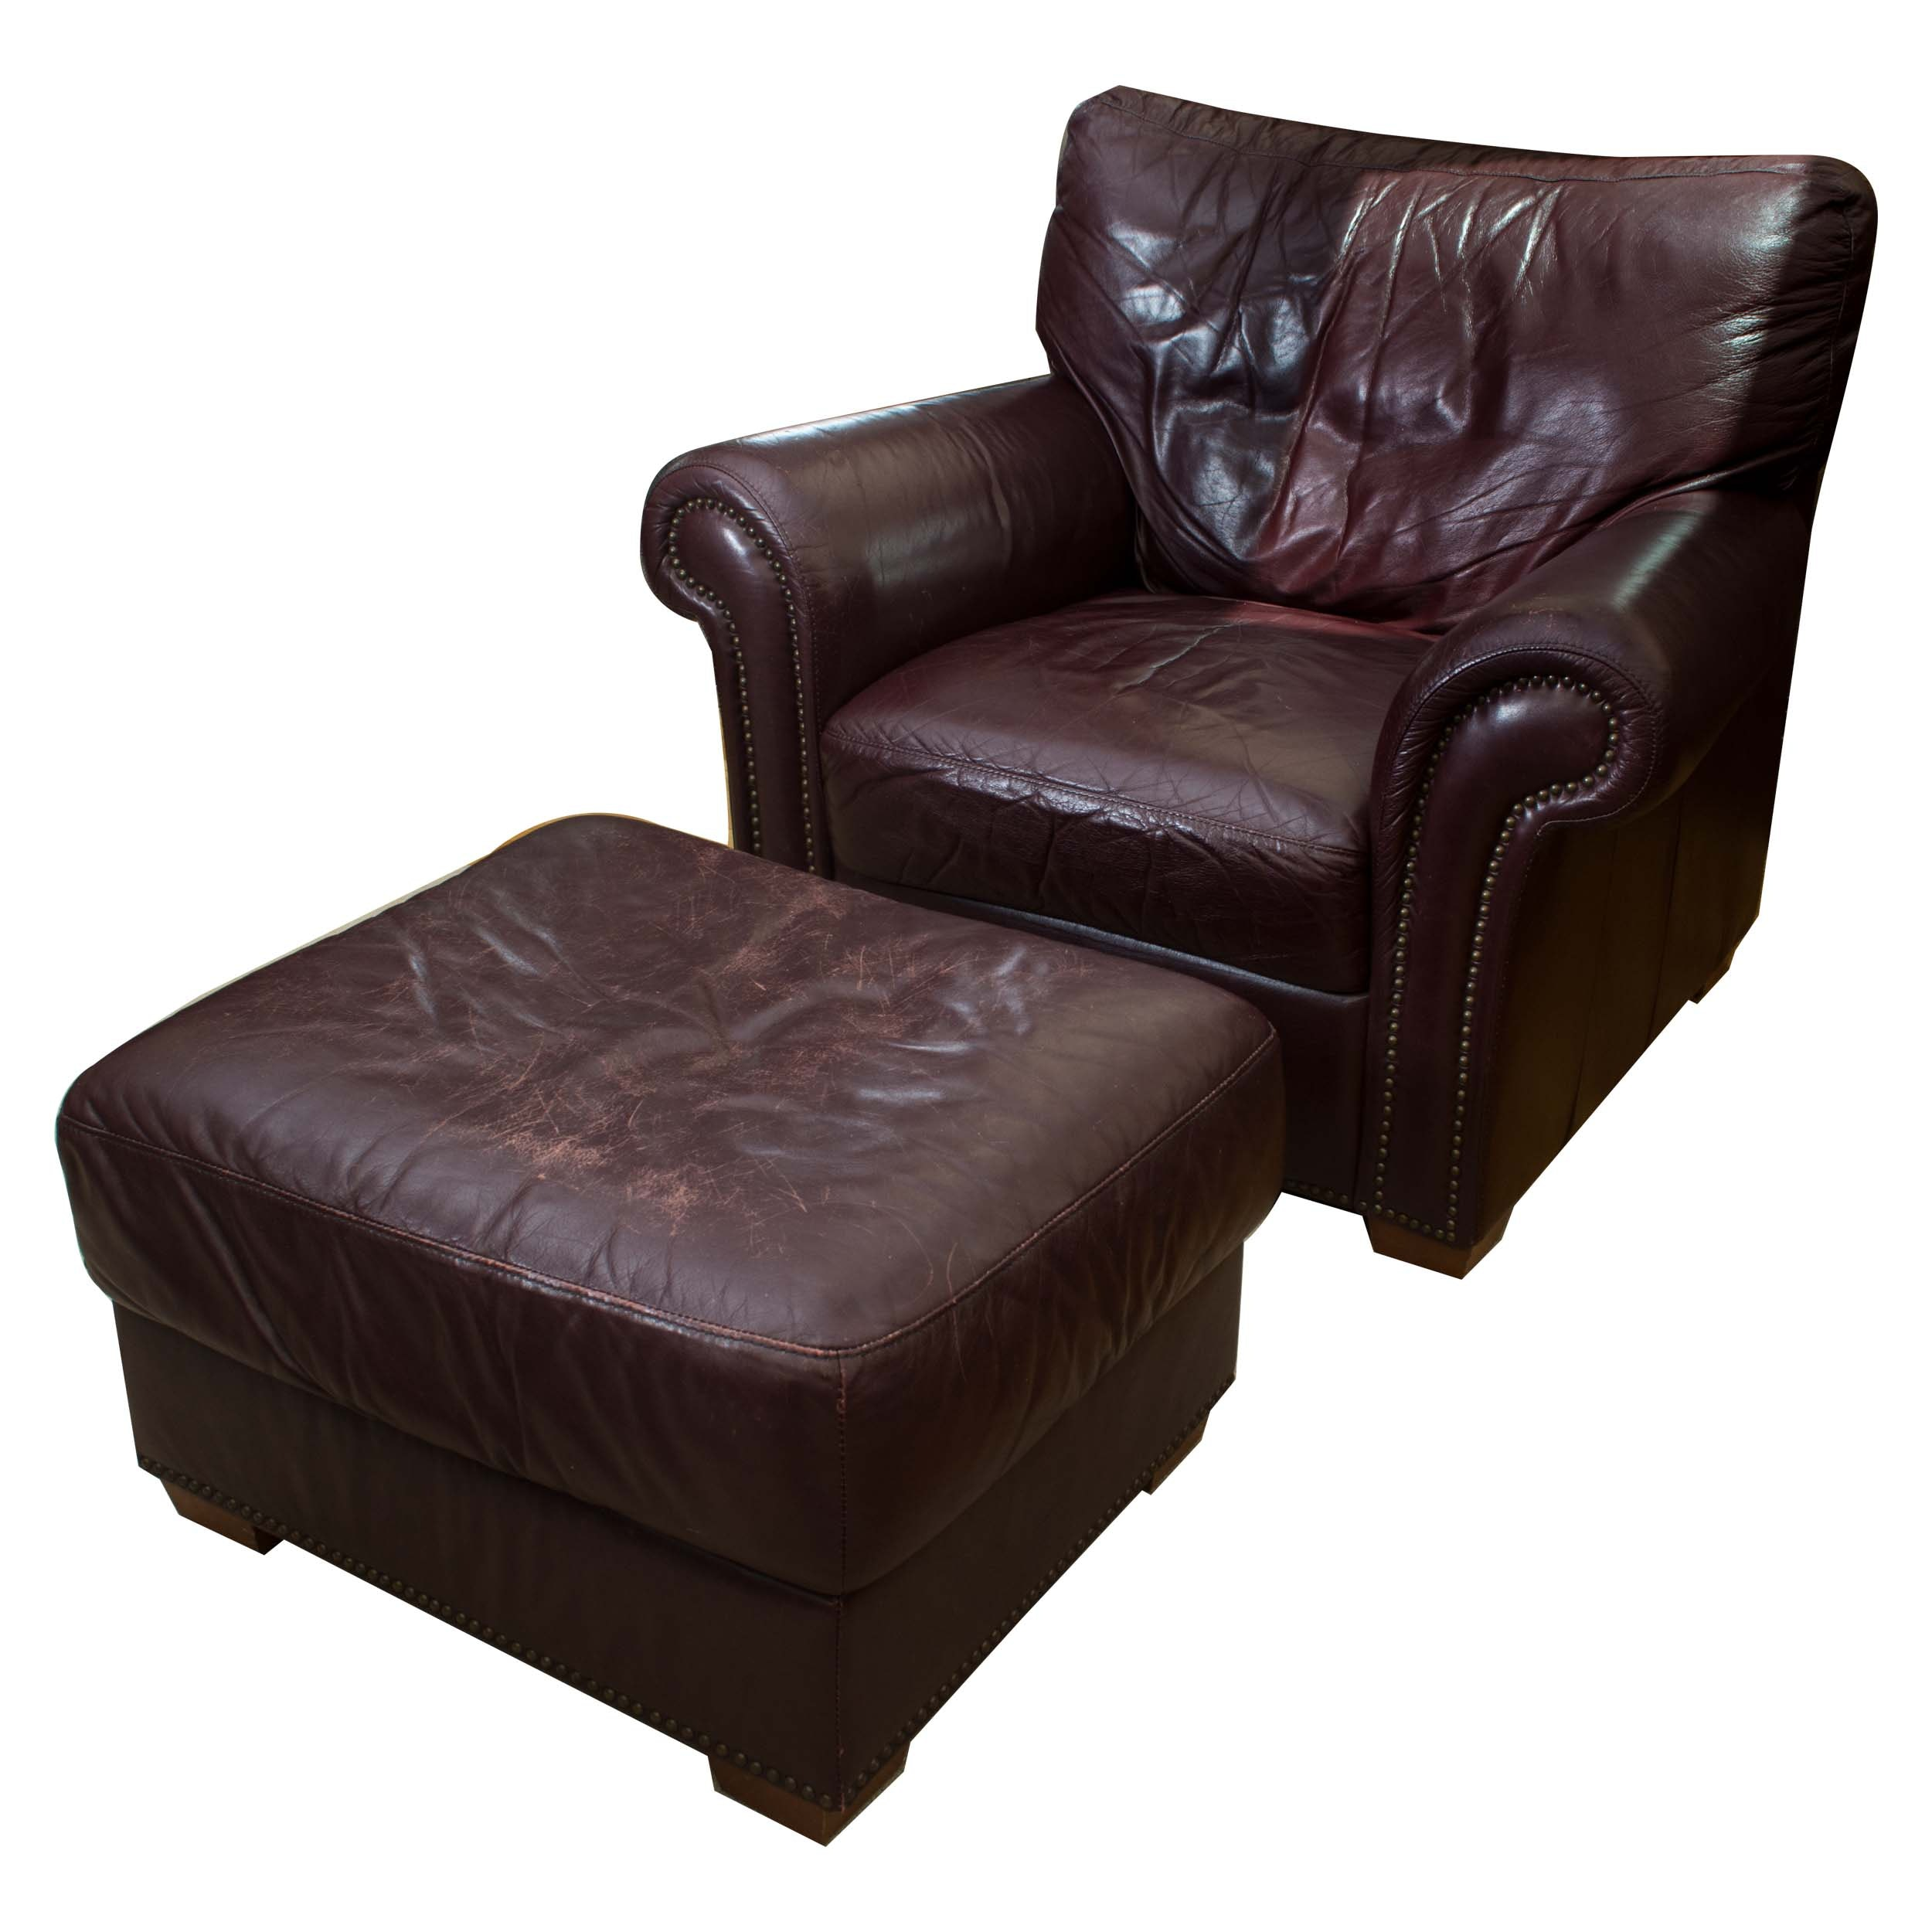 Delightful Burgundy Leather Club Chair With Ottoman ...